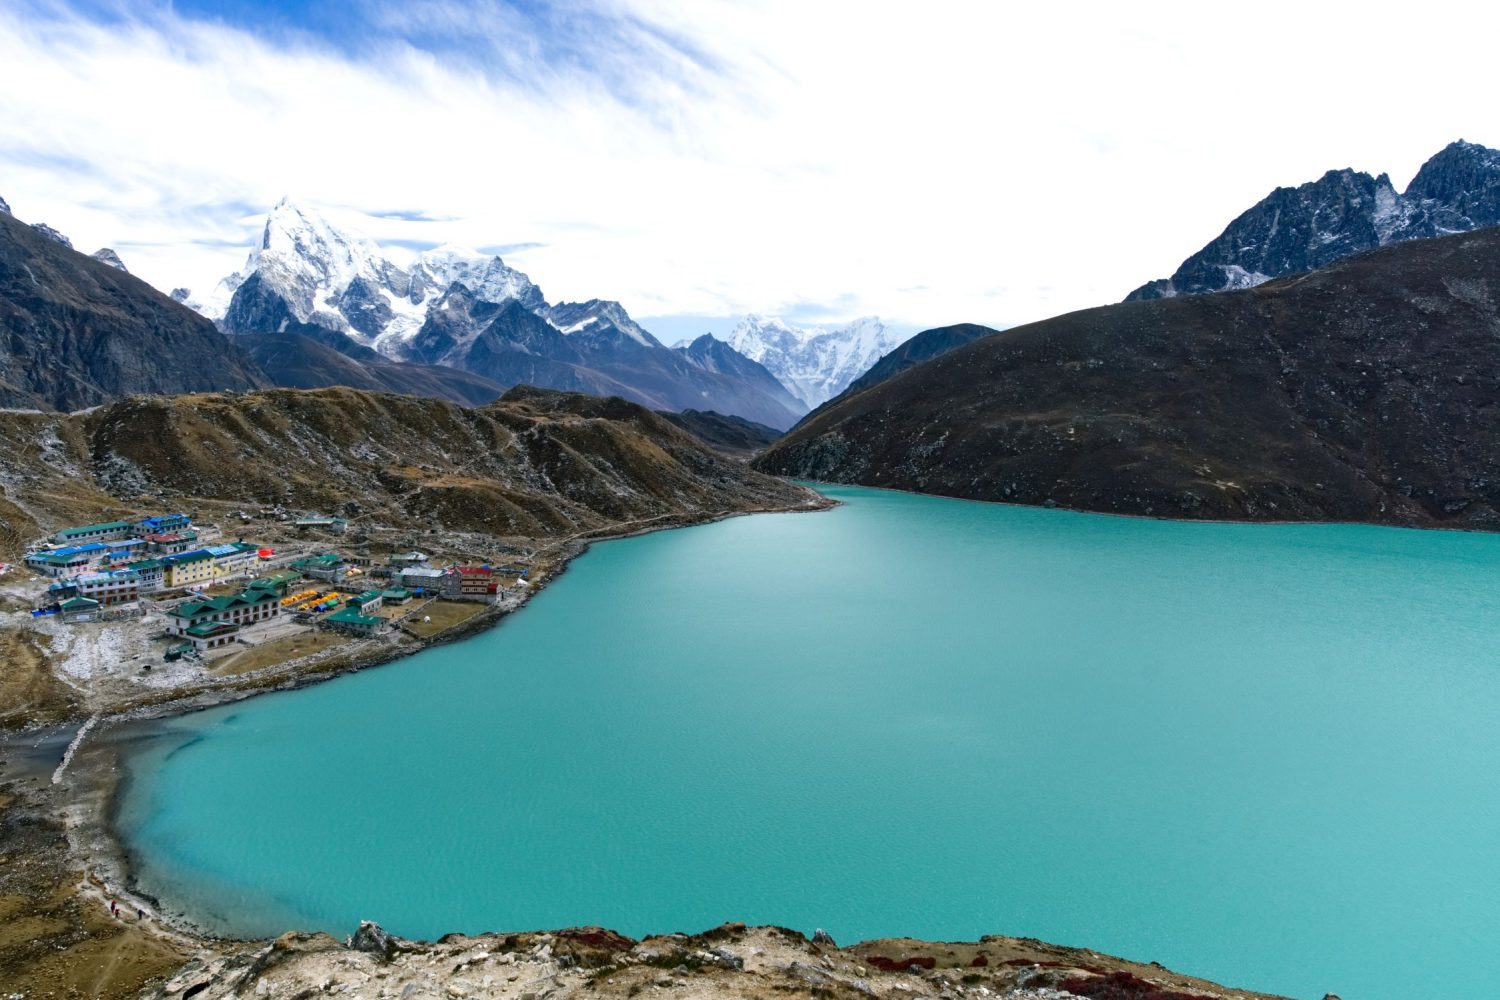 Everest Base Camp Trek via Gokyo Lake and Cho La Pass